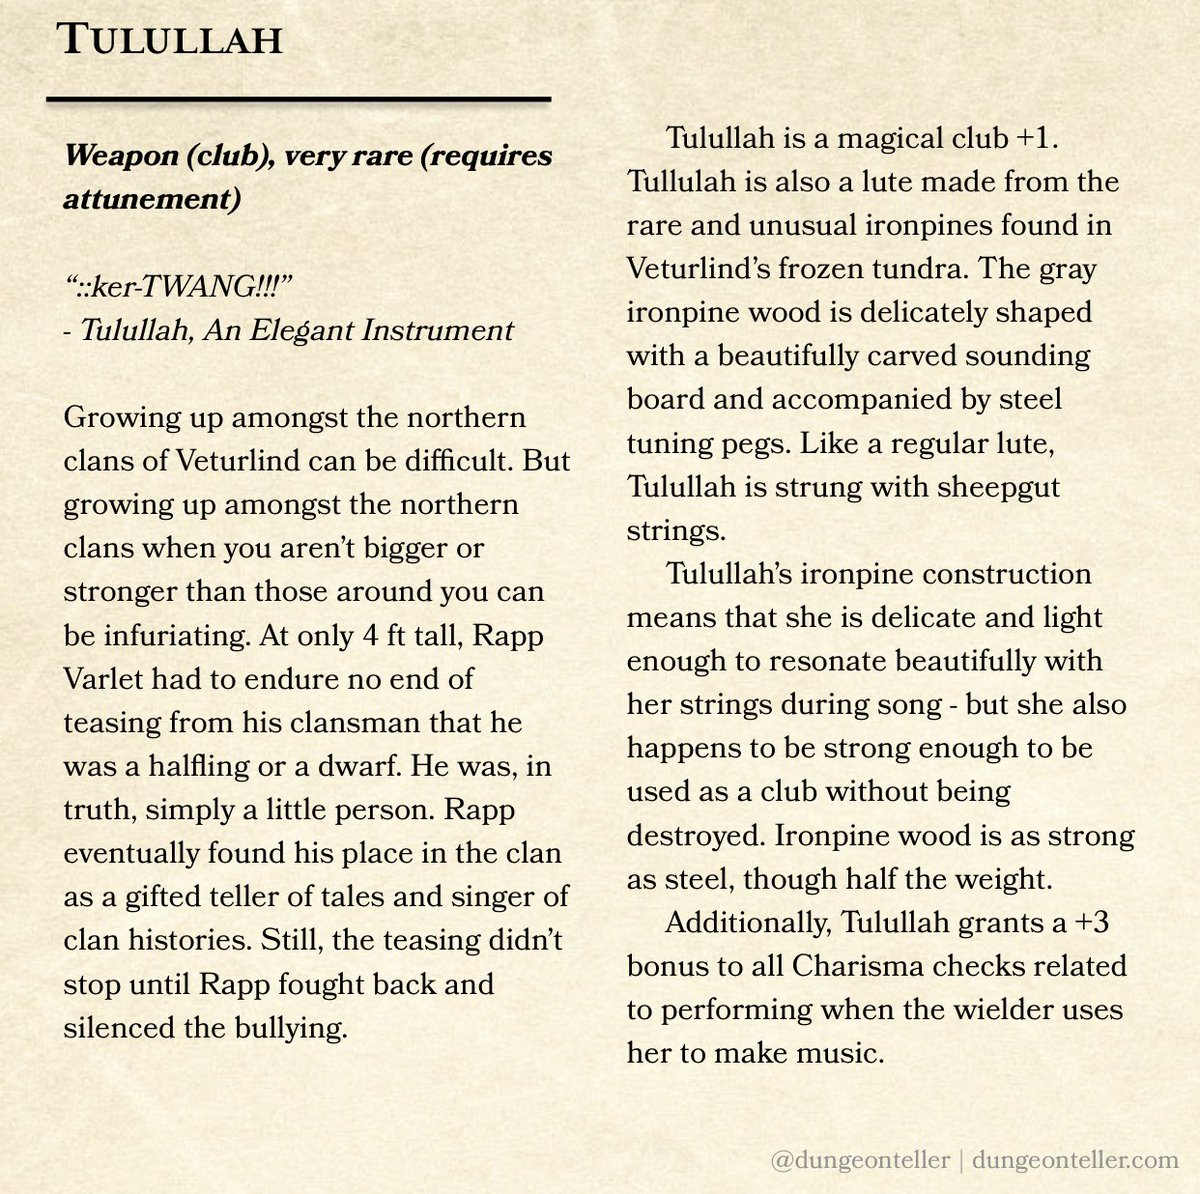 Dungeonteller Com On Twitter Magic Item A Day No 239 Tulullah A Magical Lute With The Gift Of Both Song And Black Eyes Dungeonsanddragons Dnd Dnd5e Tabletopgames Ttrpg Roleplaying Rpg Homebrew